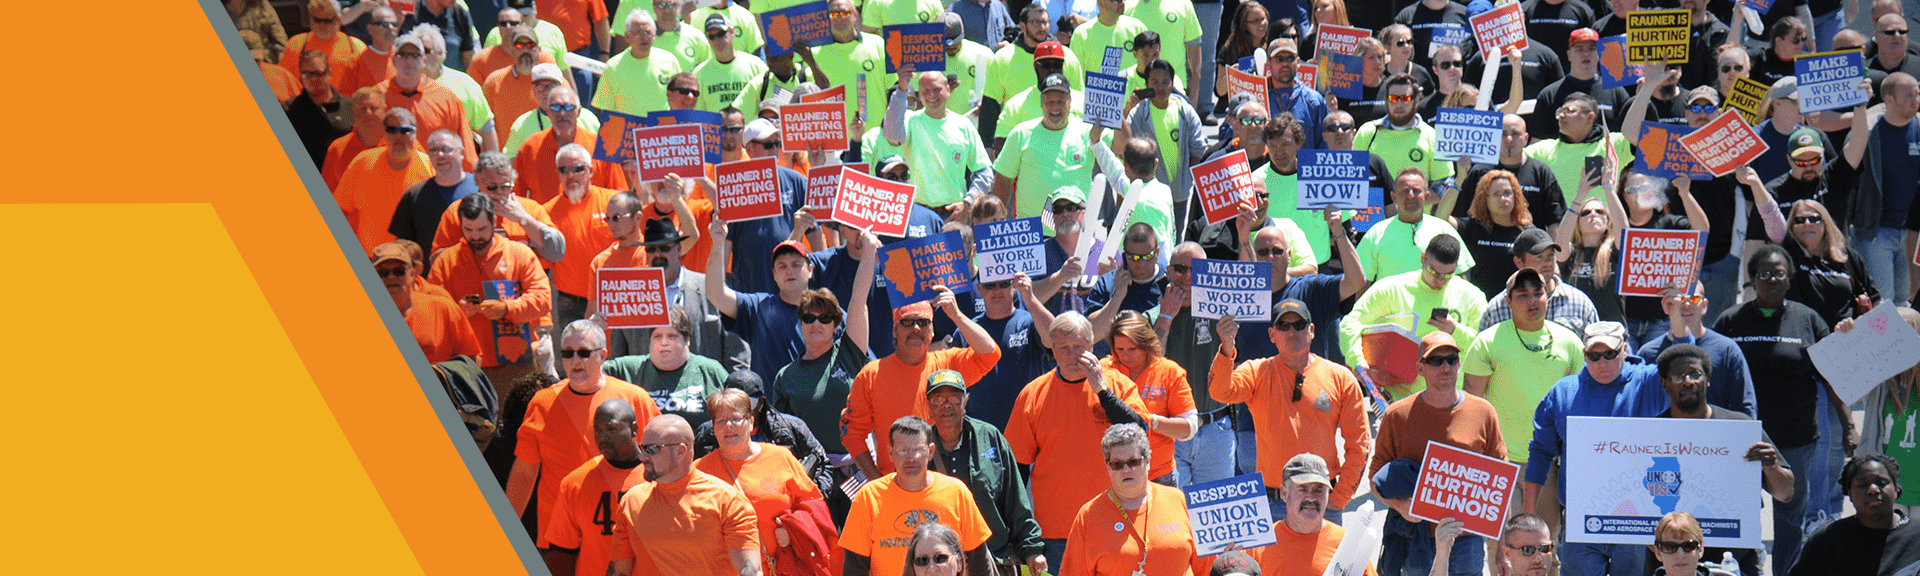 LiUNA Supporters Crowd Protest